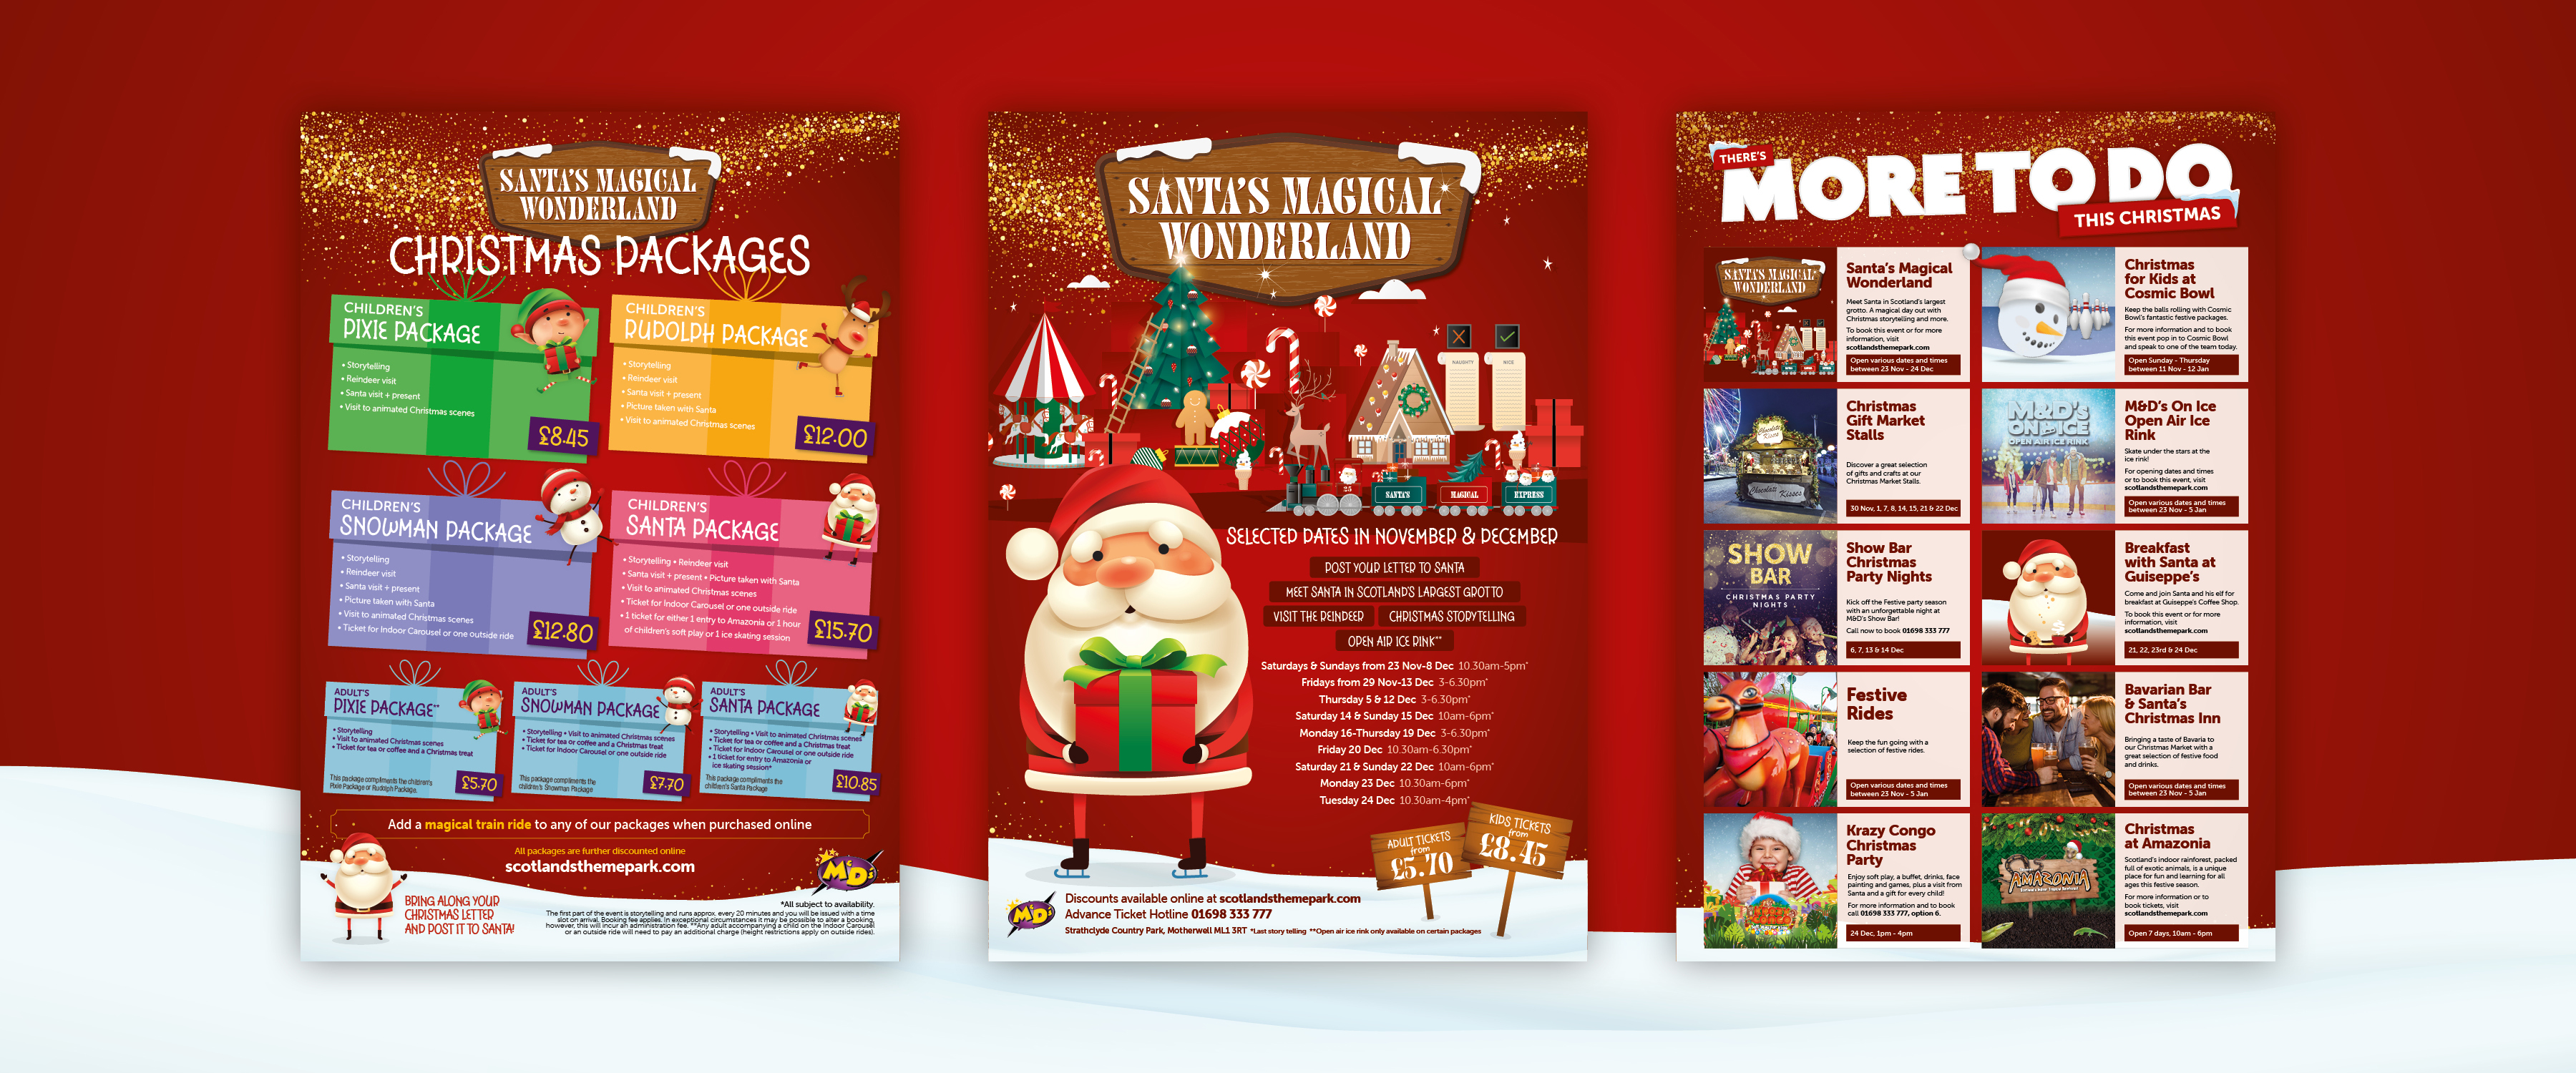 Santa's-Wonderland-Leaflets-Mock-Up-3600x1500